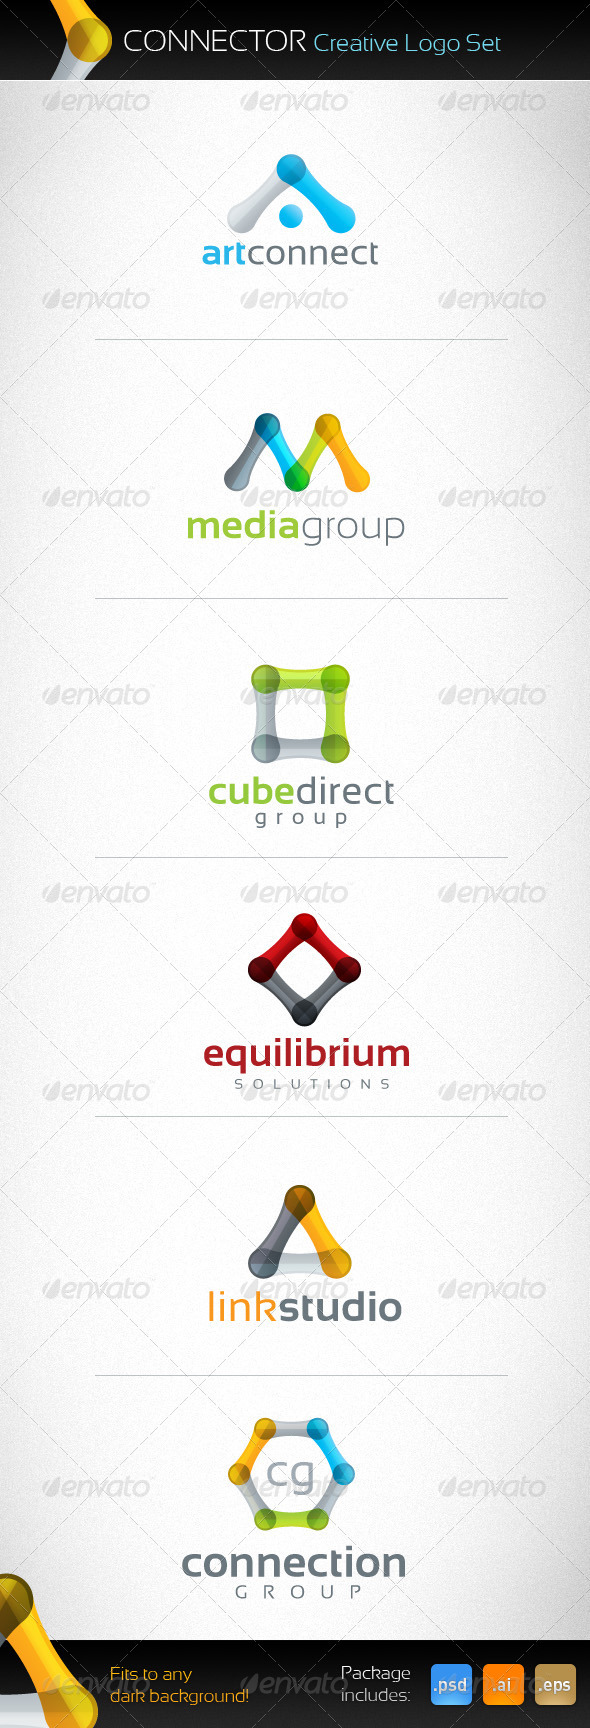 Connector Creative Logo Set - Abstract Logo Templates